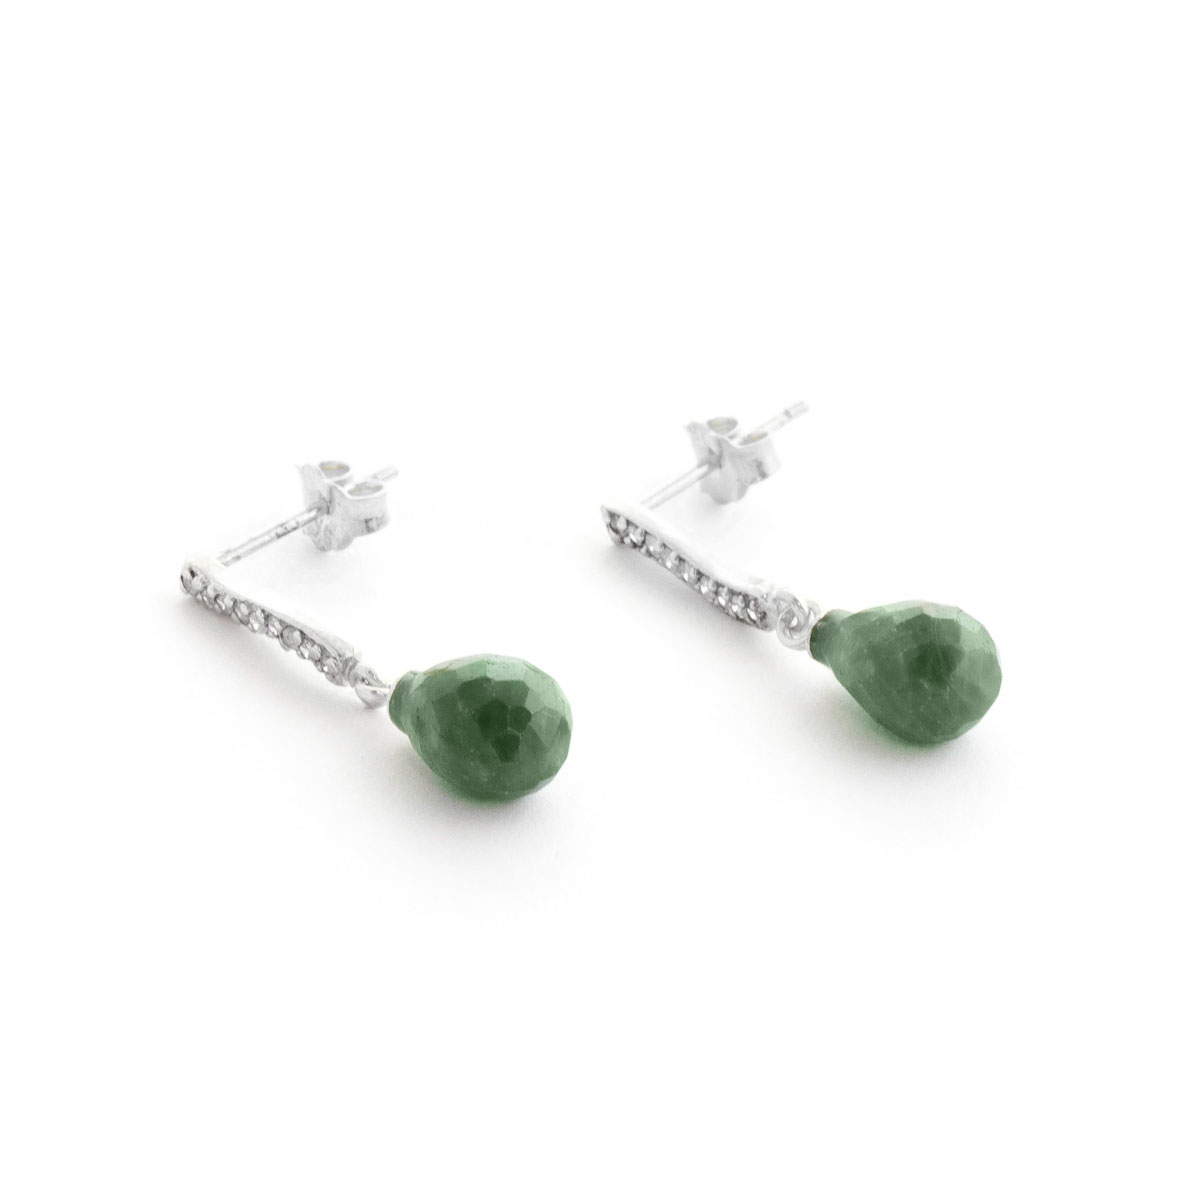 Emerald & Diamond Droplet Earrings in 9ct White Gold